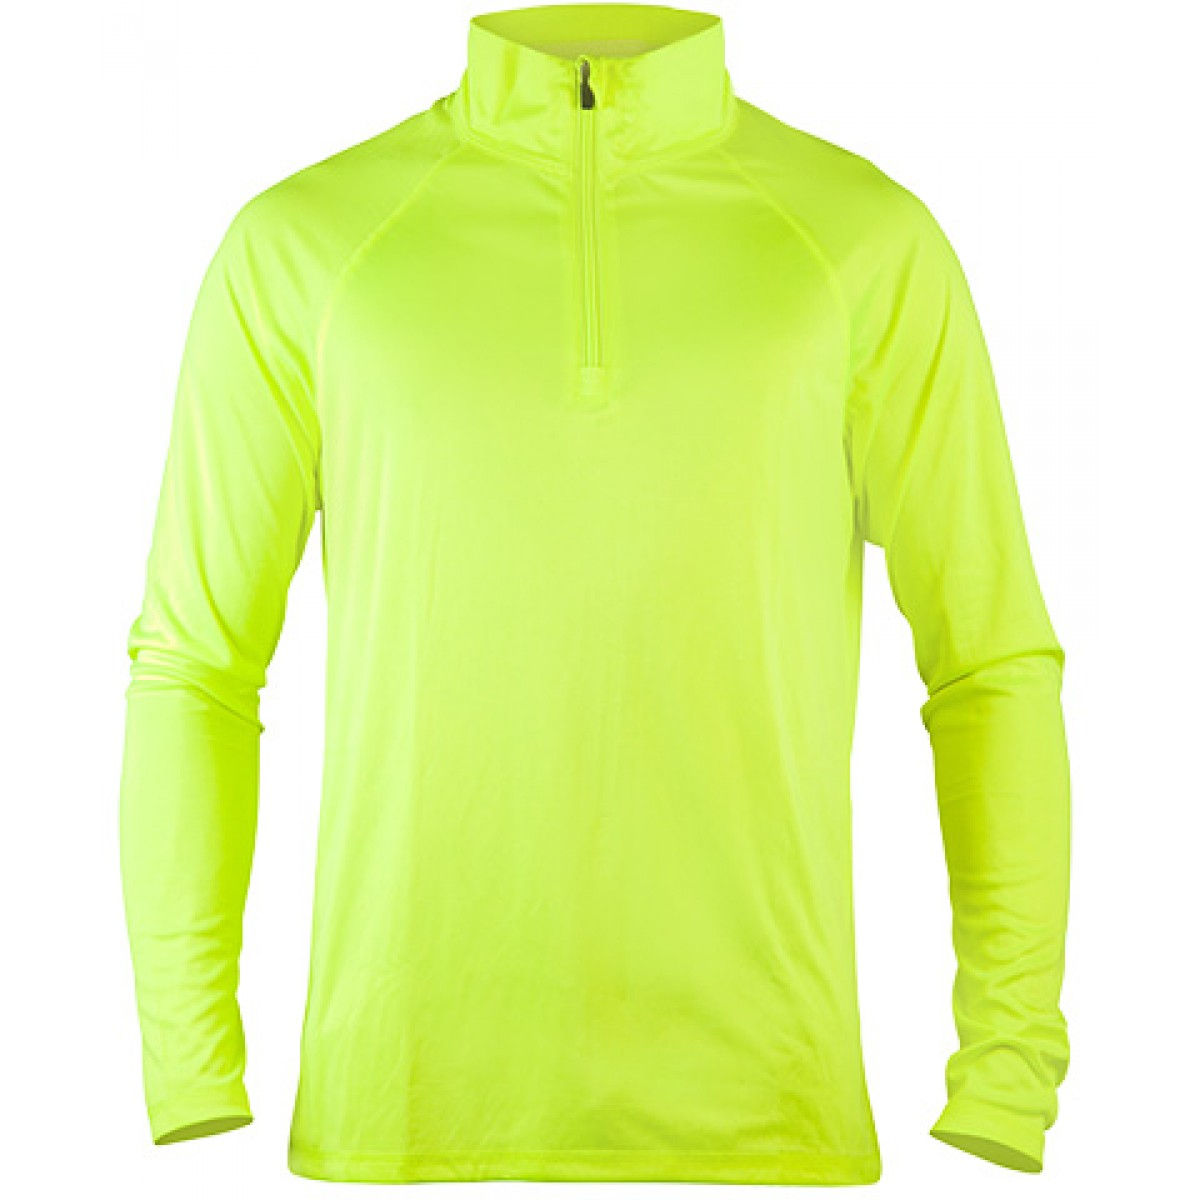 Men's Quarter-Zip Lightweight Pullover-Neon Green-S